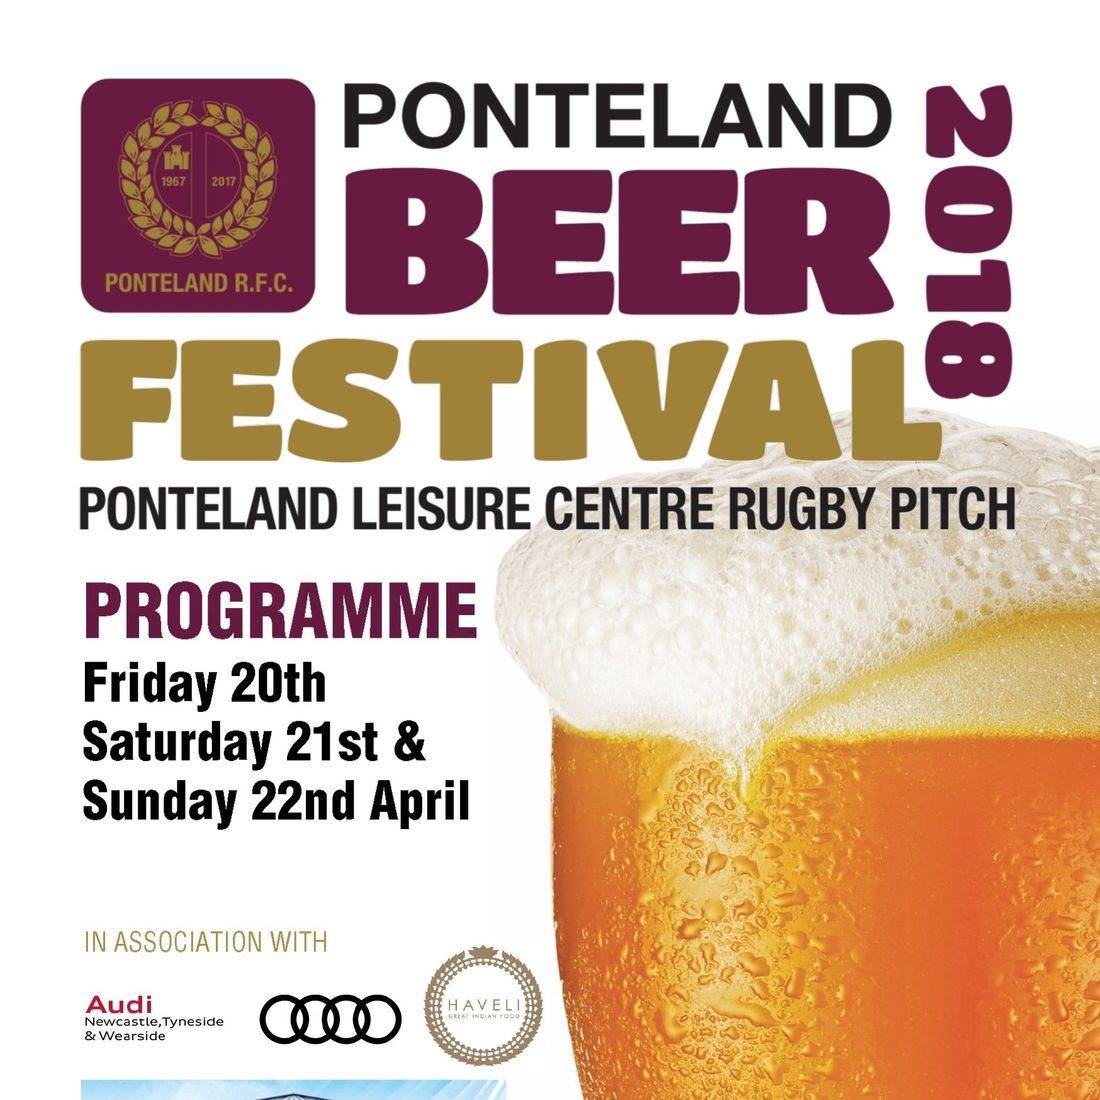 #HeadlineMarketing #YourMarketingManager #PontBeerFest